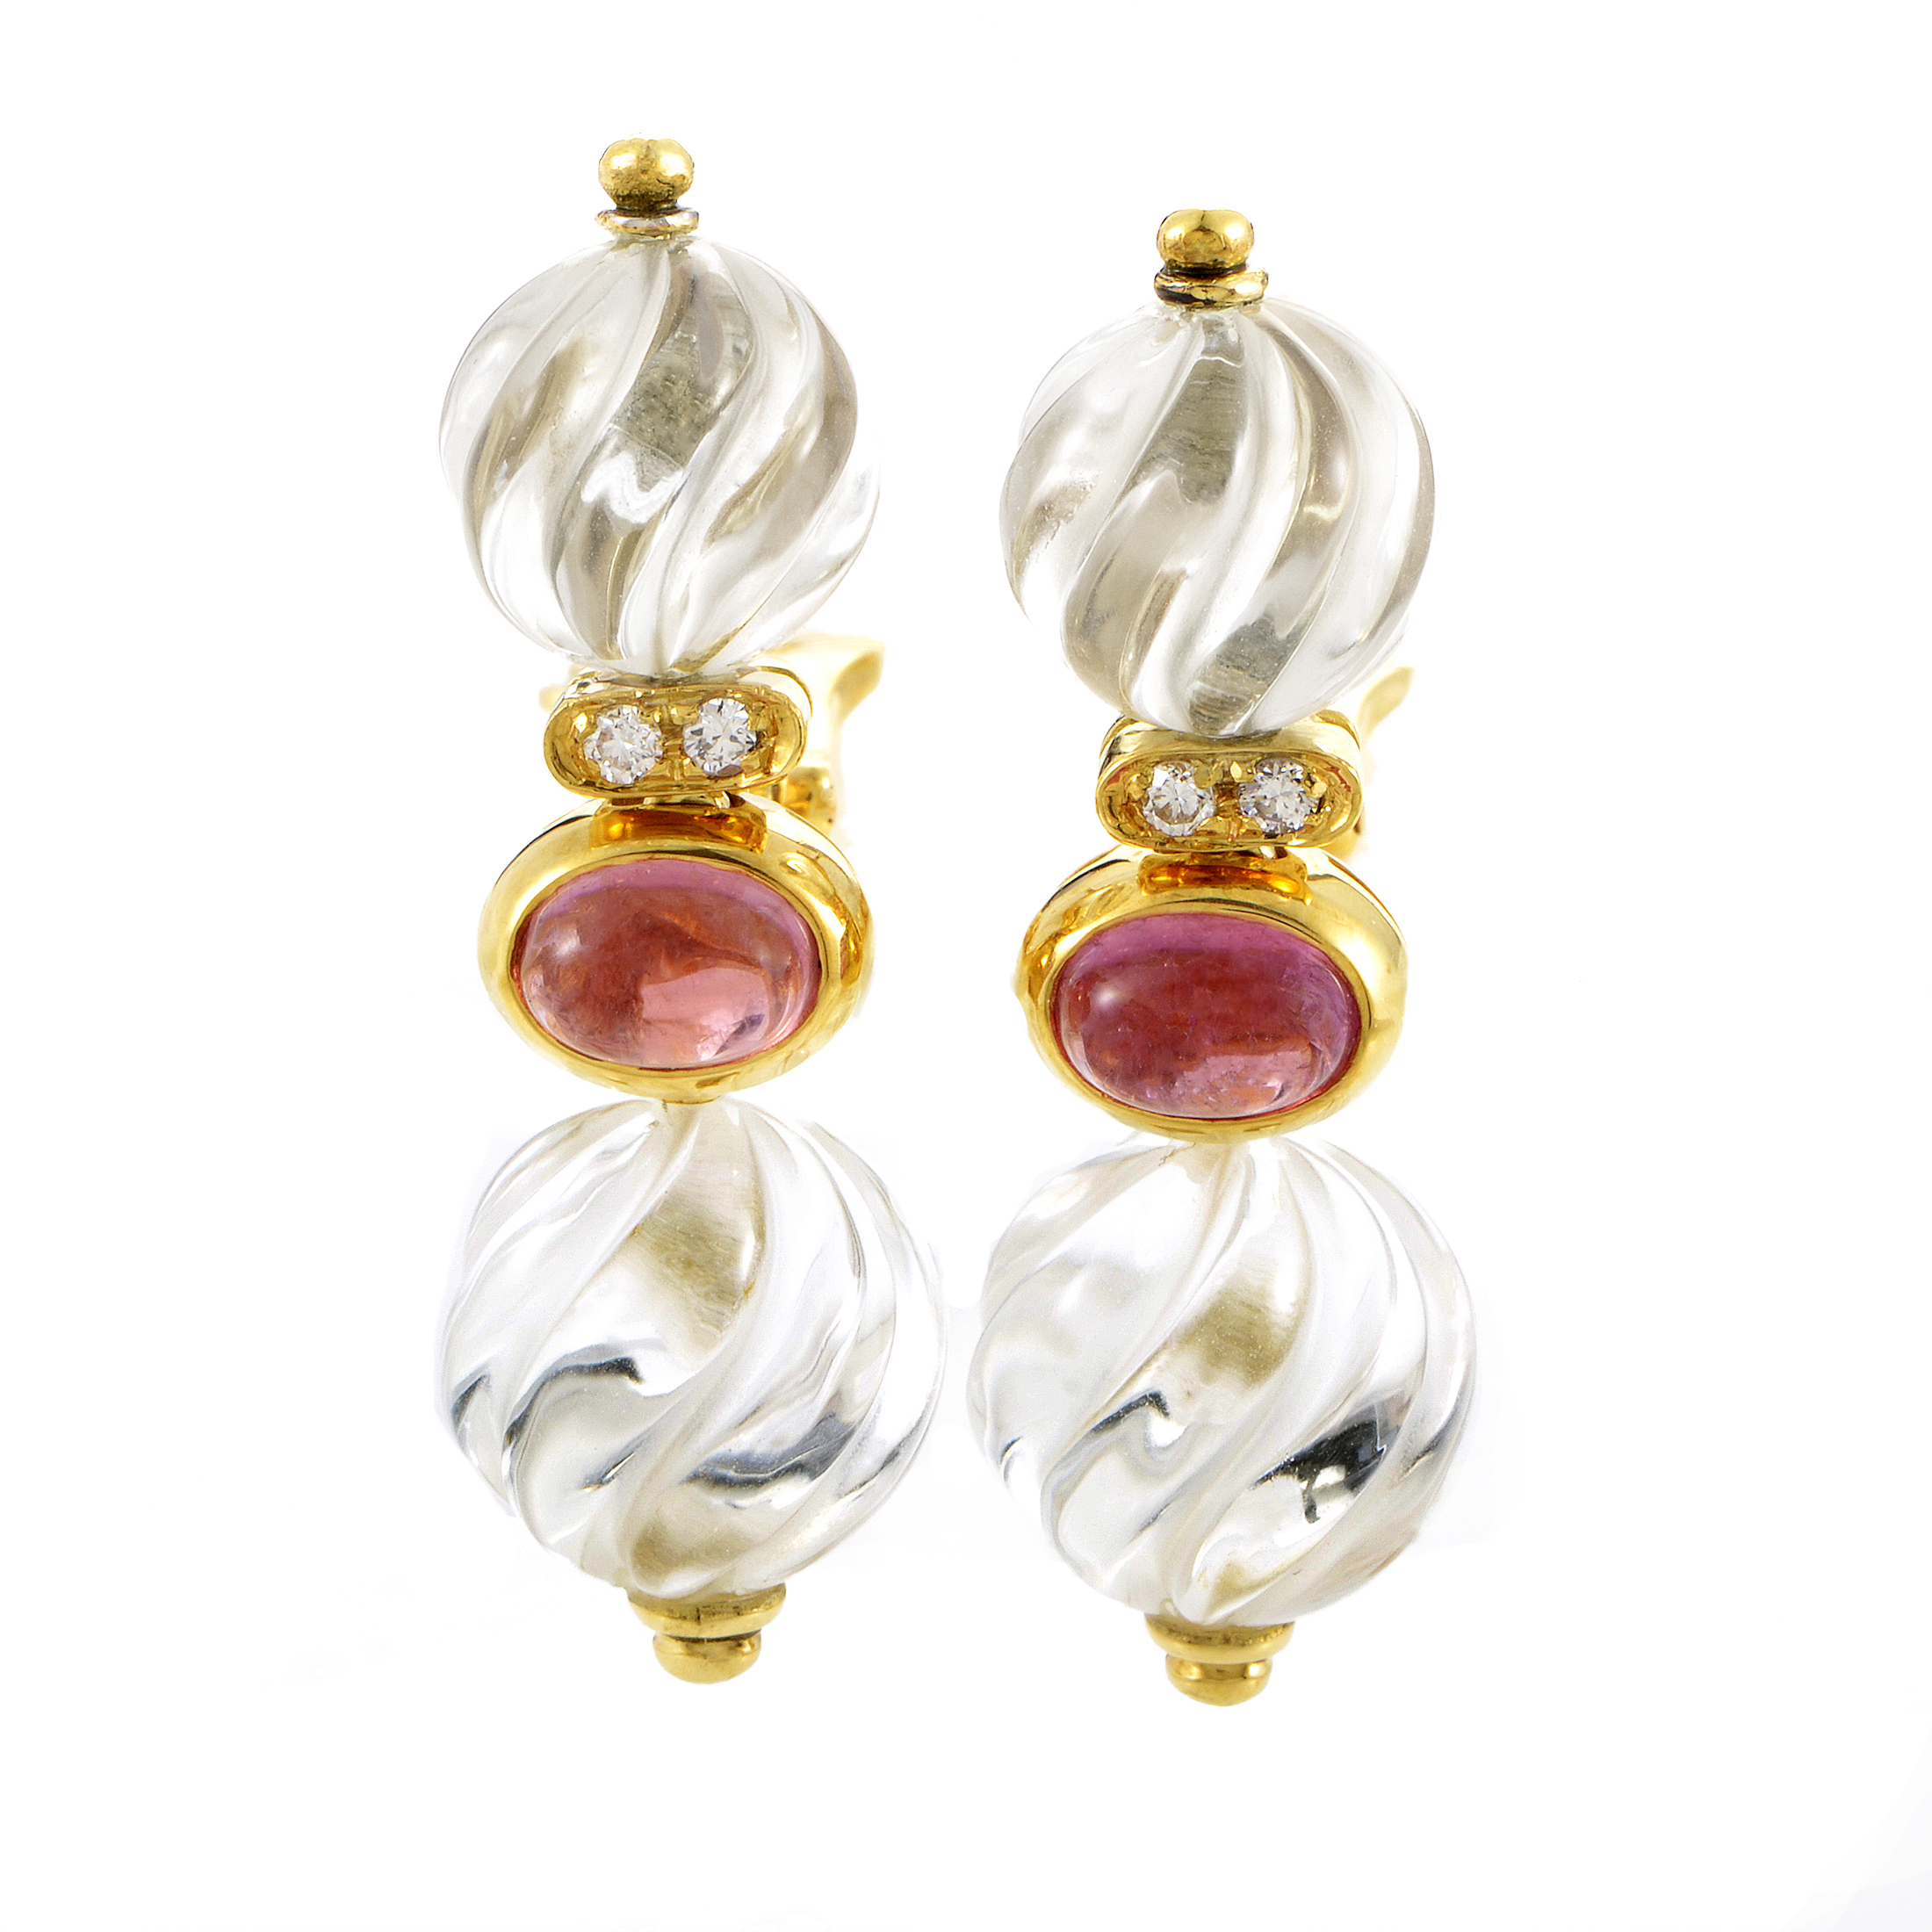 Boucheron Women's 18K Yellow Gold Gemstone & Crystal Earrings